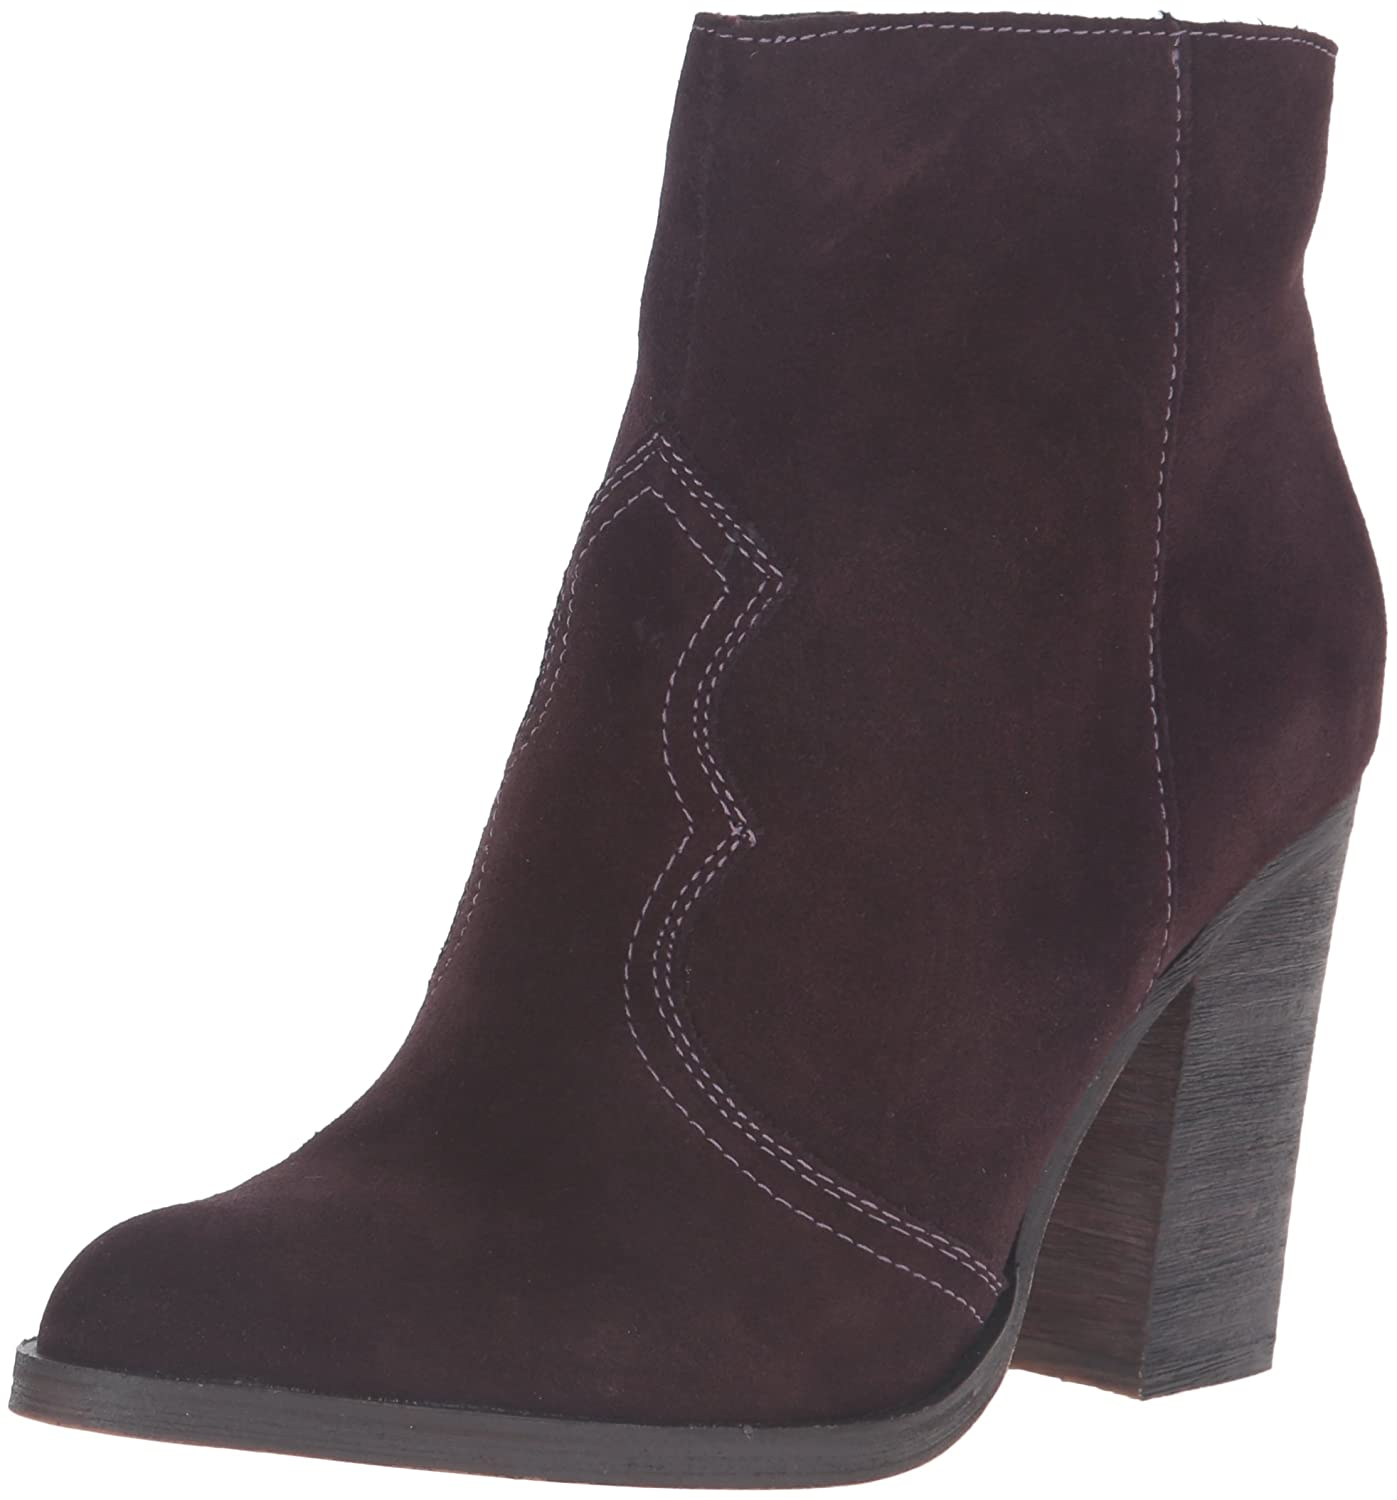 Dolce Vita Women's Caillin Ankle Bootie B01EMC8KX0 8 B(M) US|Mulberry